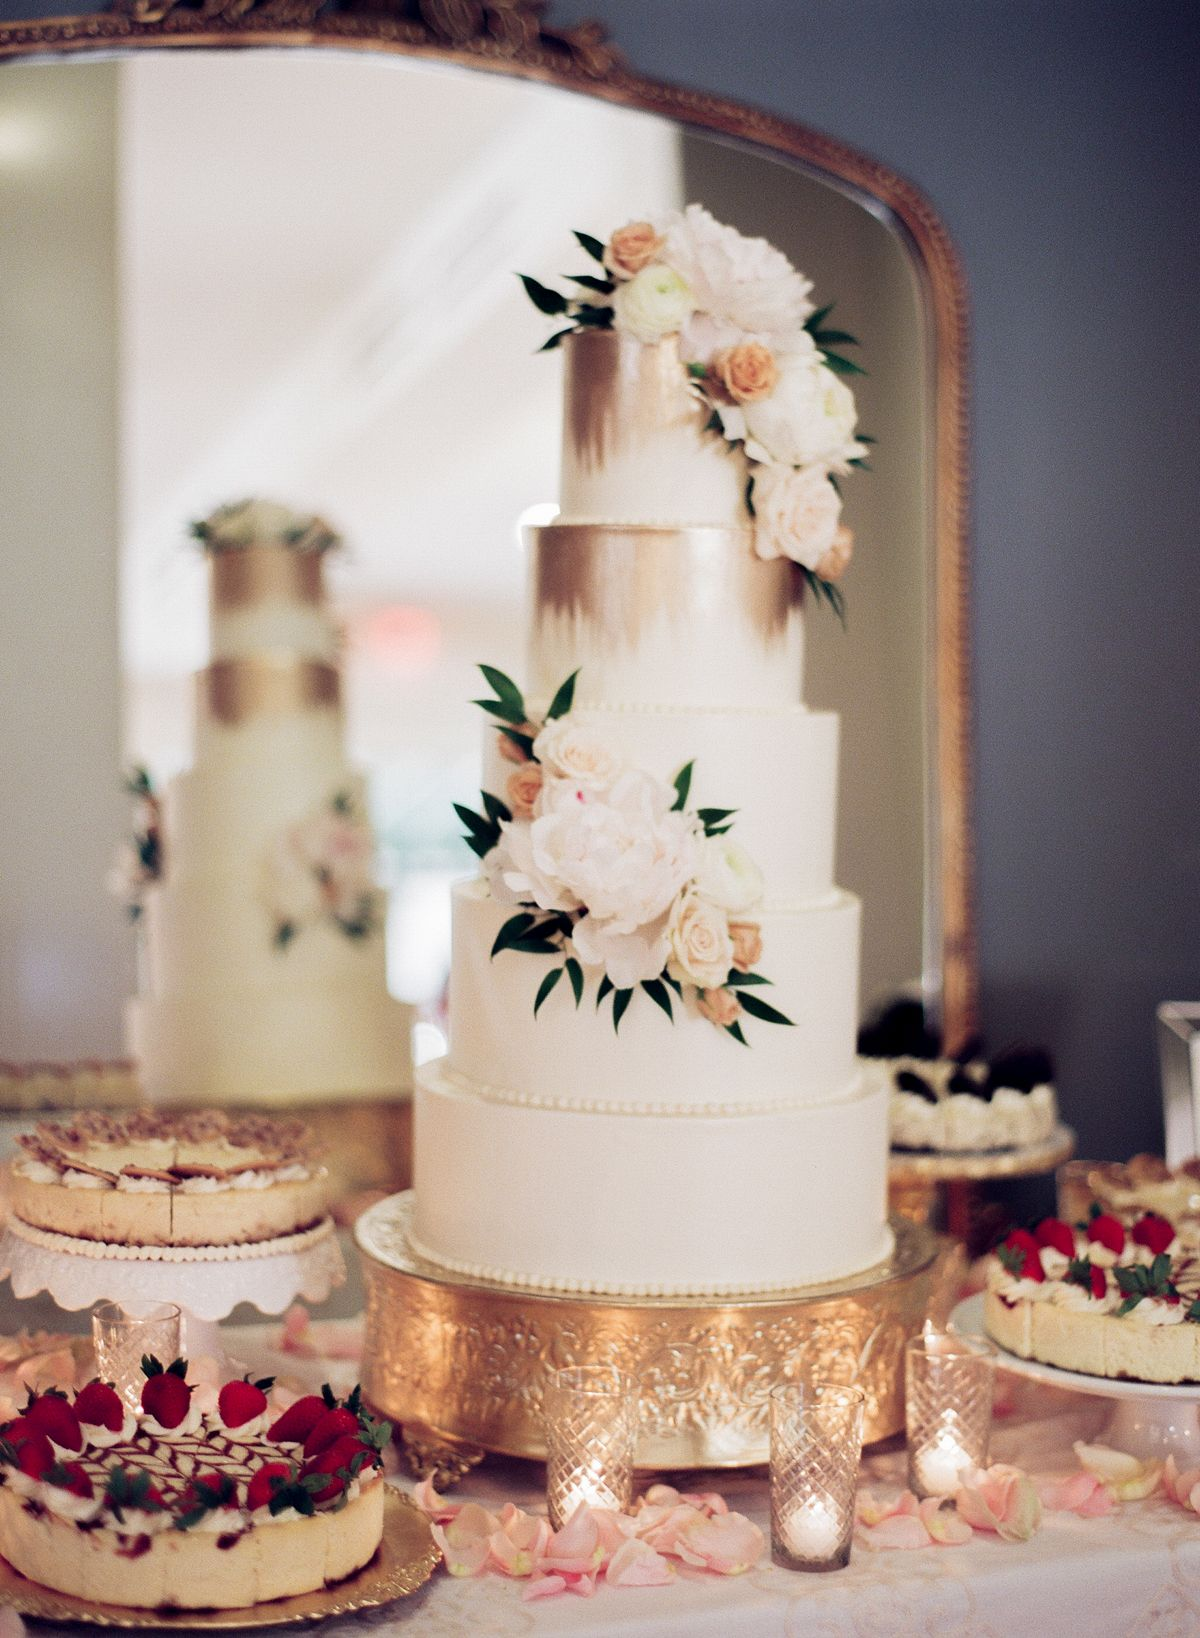 Il Mercato Wedding by Lance Nicoll Floral wedding cakes